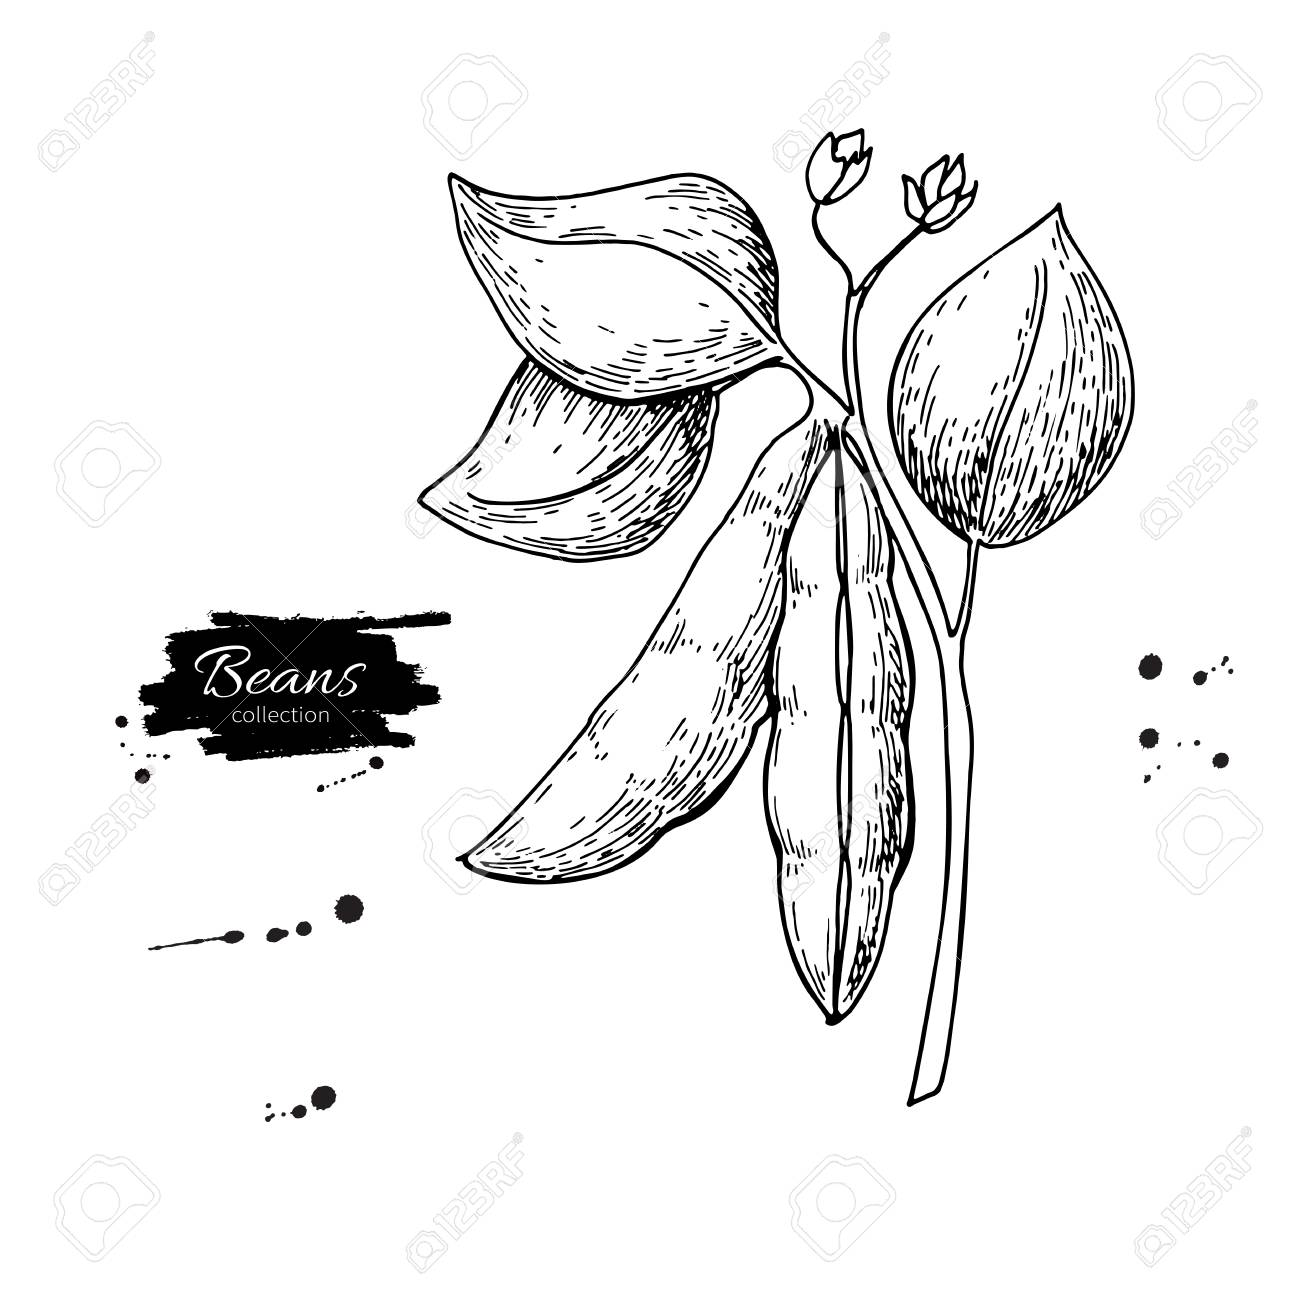 Bean Plant Drawing At Getdrawings